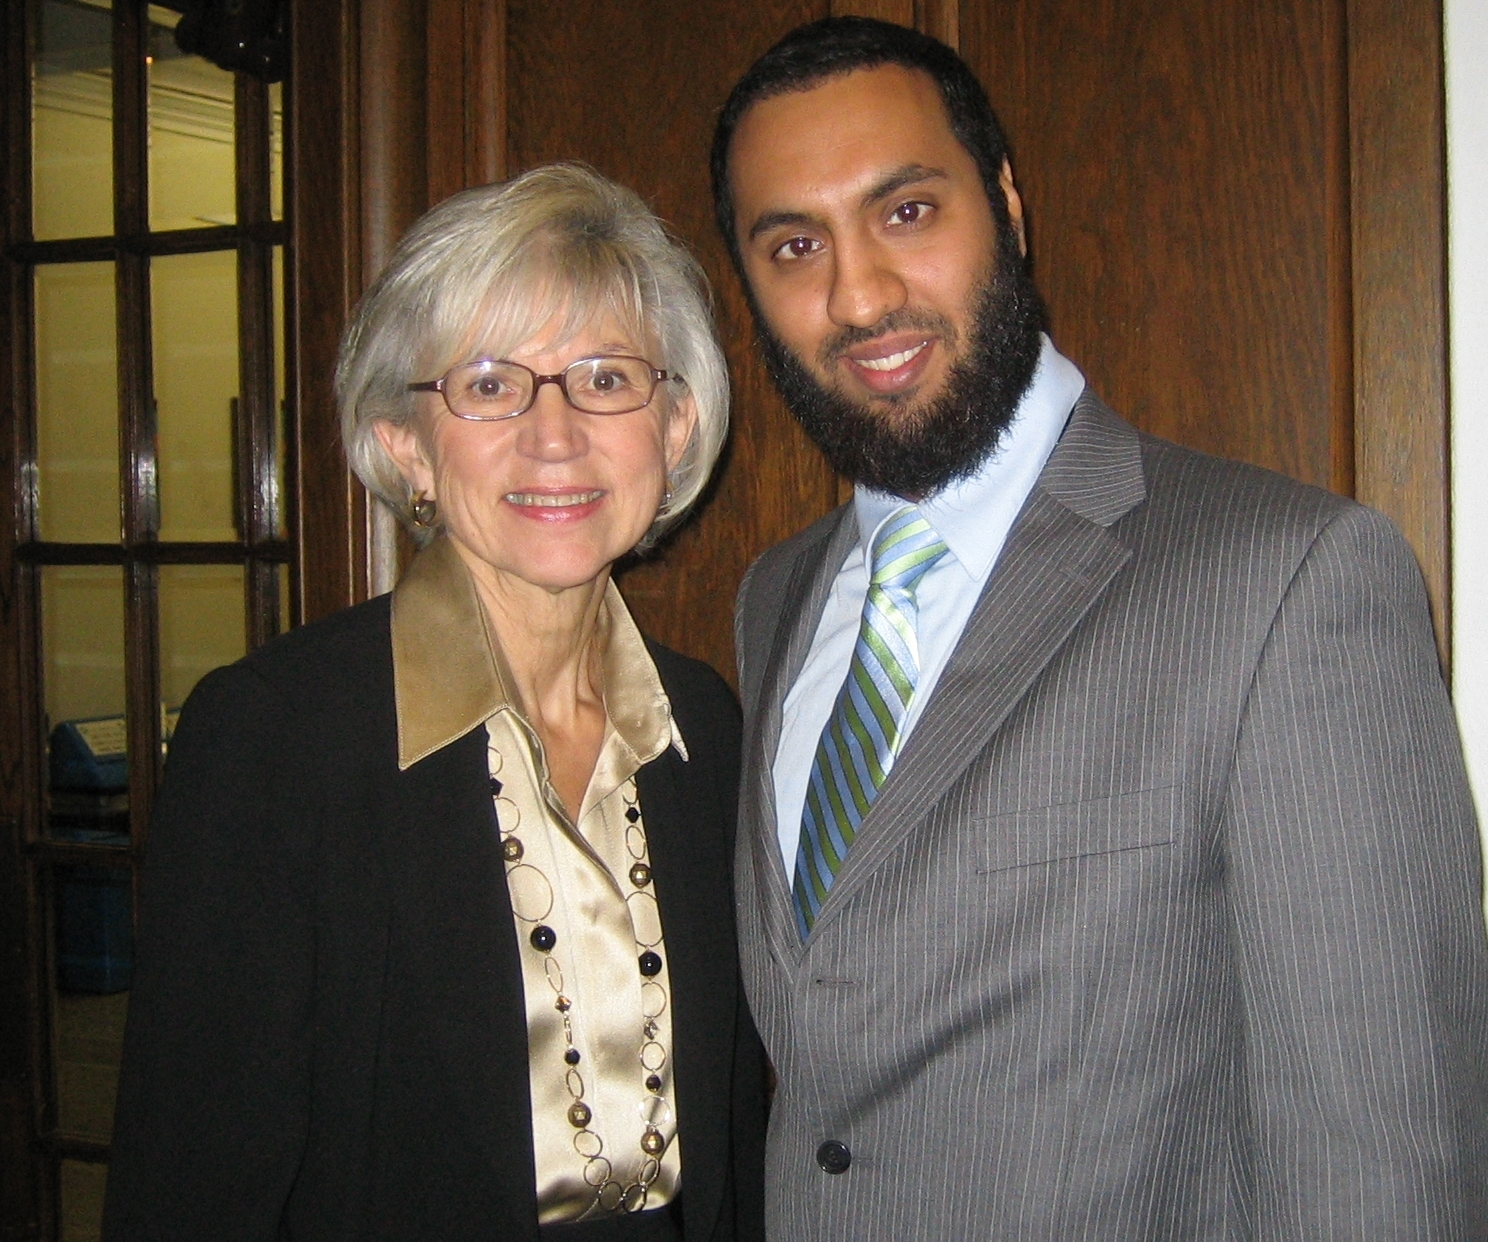 The Right Honourable Beverley McLachlin, P.C., Chief Justice of Canada